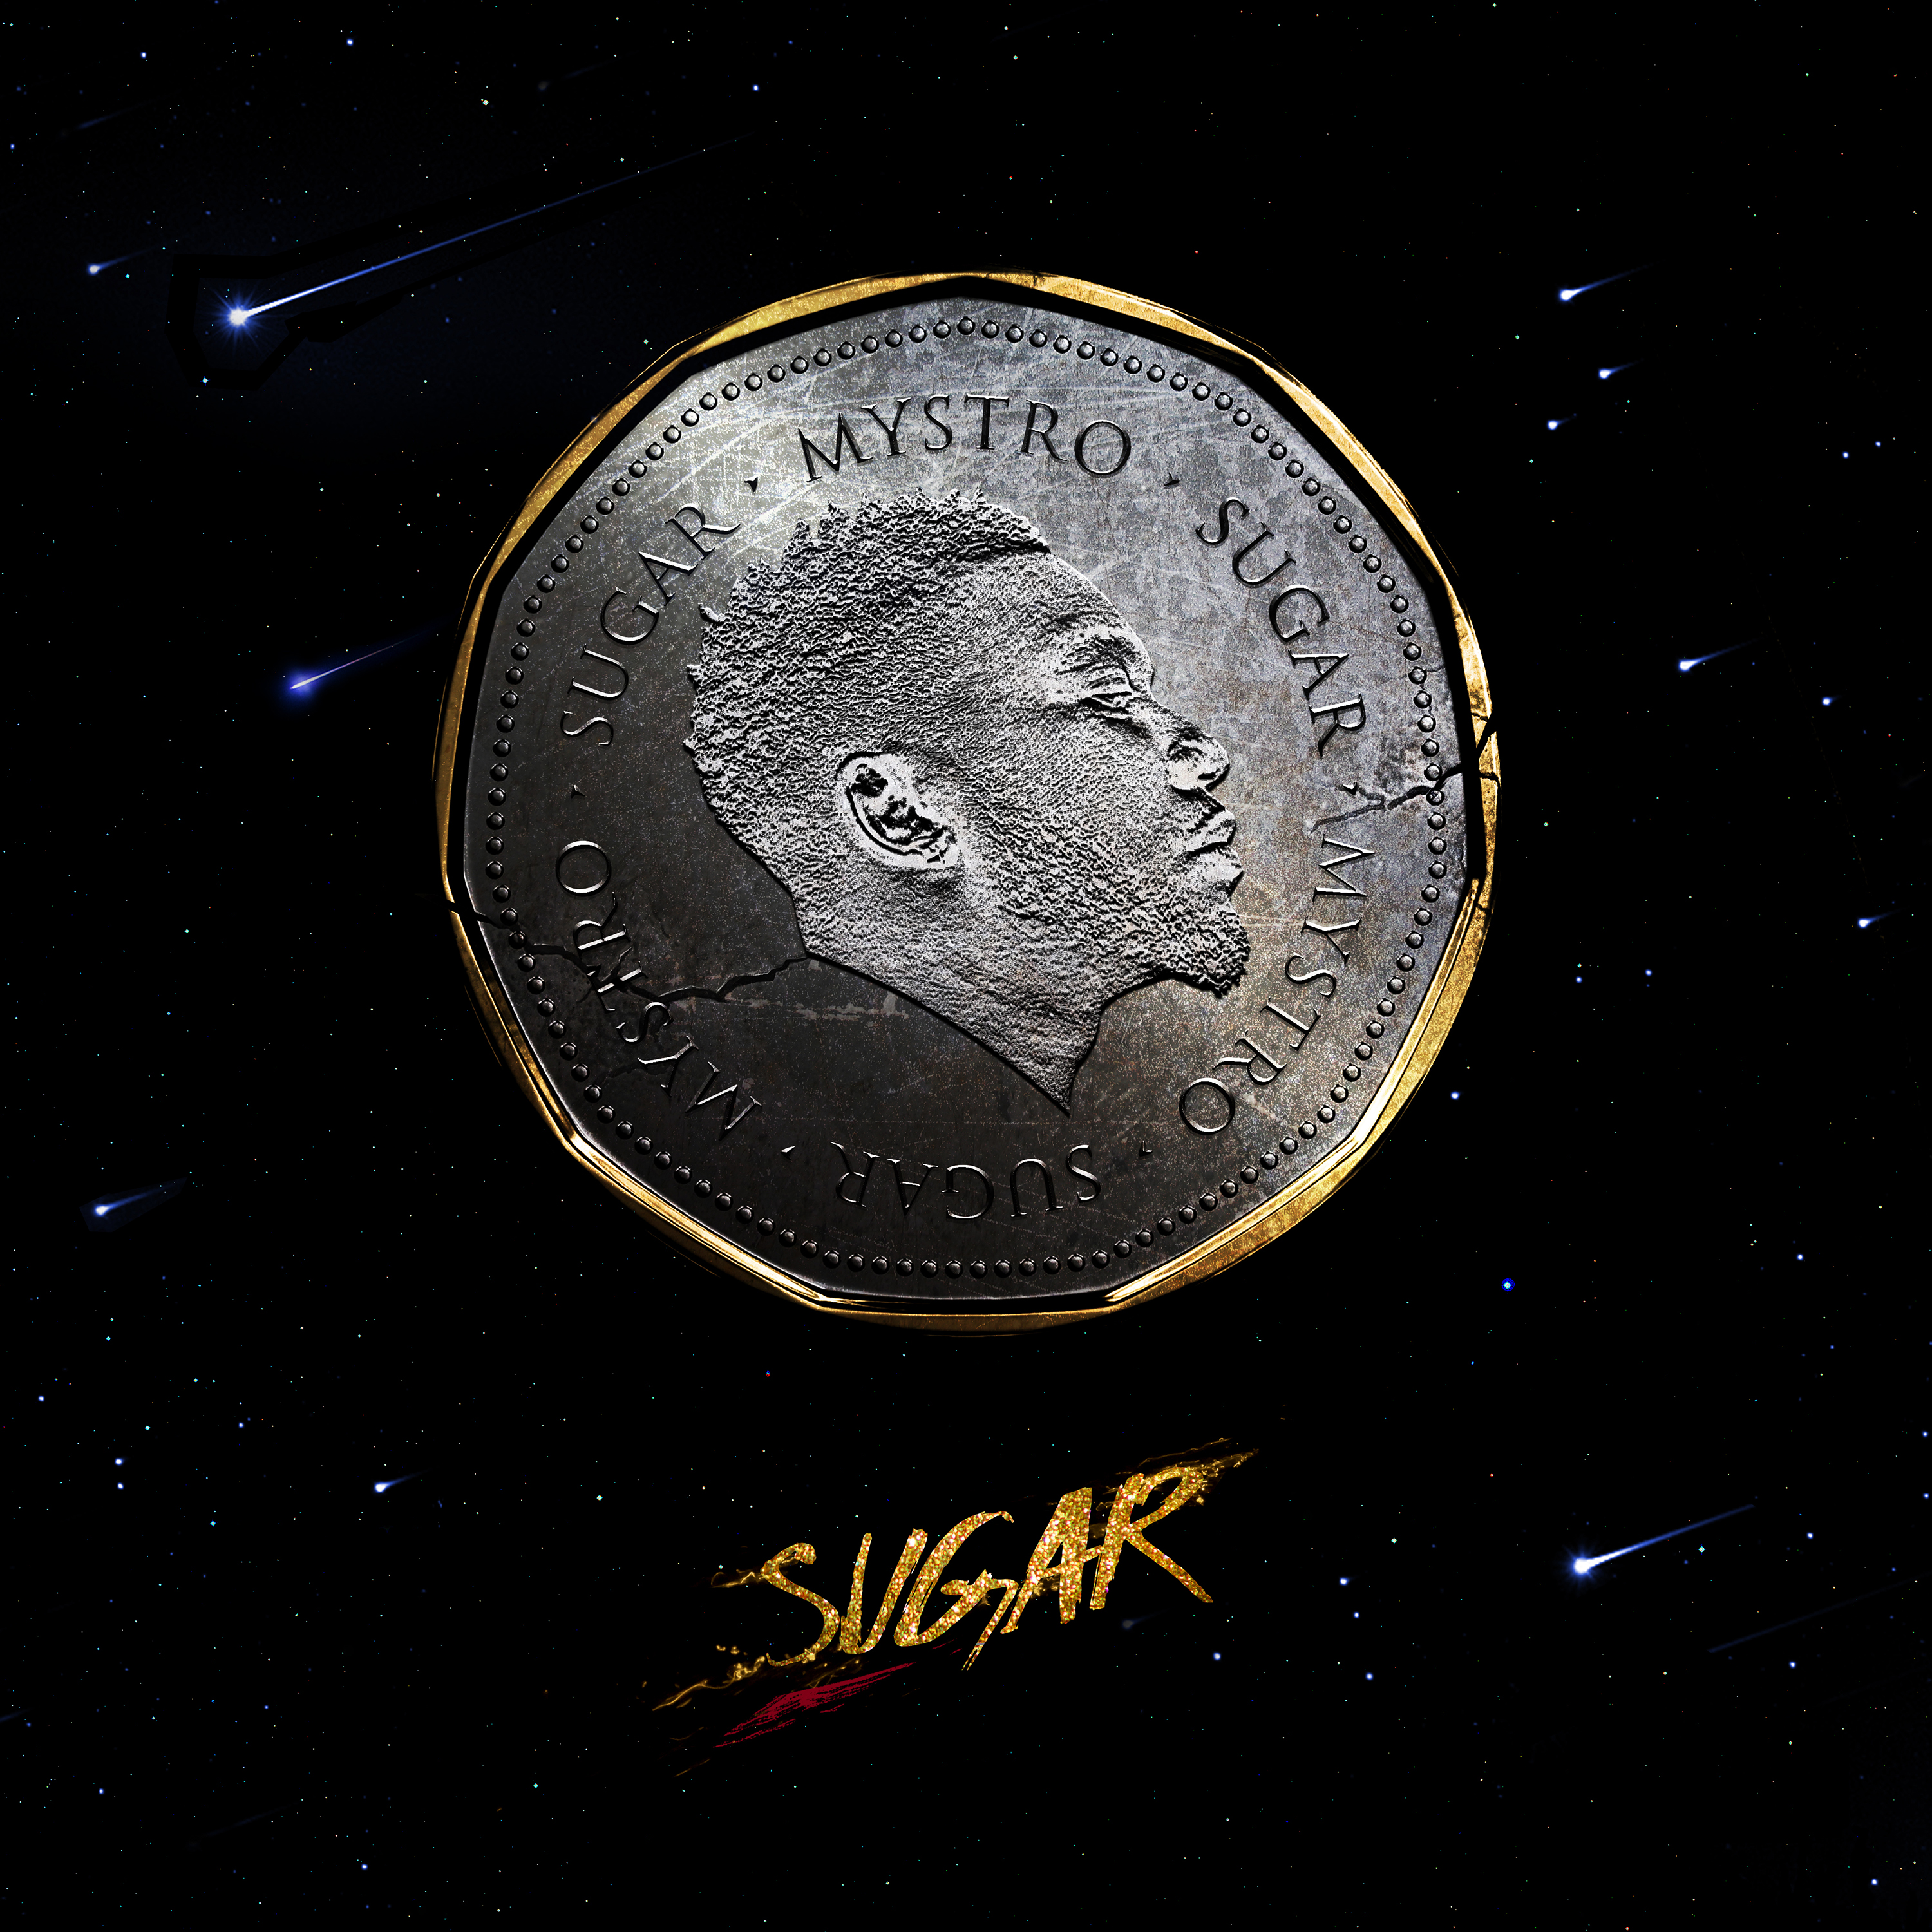 Mystro Releases Debut Project - Sugar